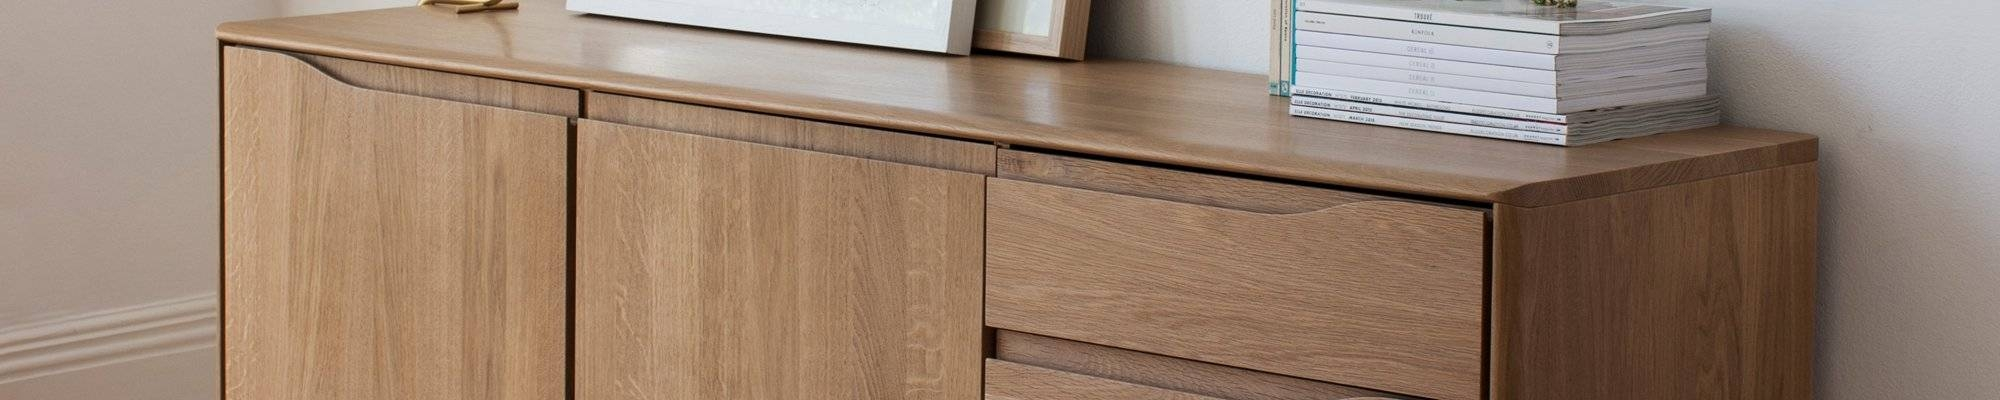 Designer Sideboards | Modern & Contemporary Sideboards | Heal's With Regard To Contemporary Sideboards (View 20 of 20)